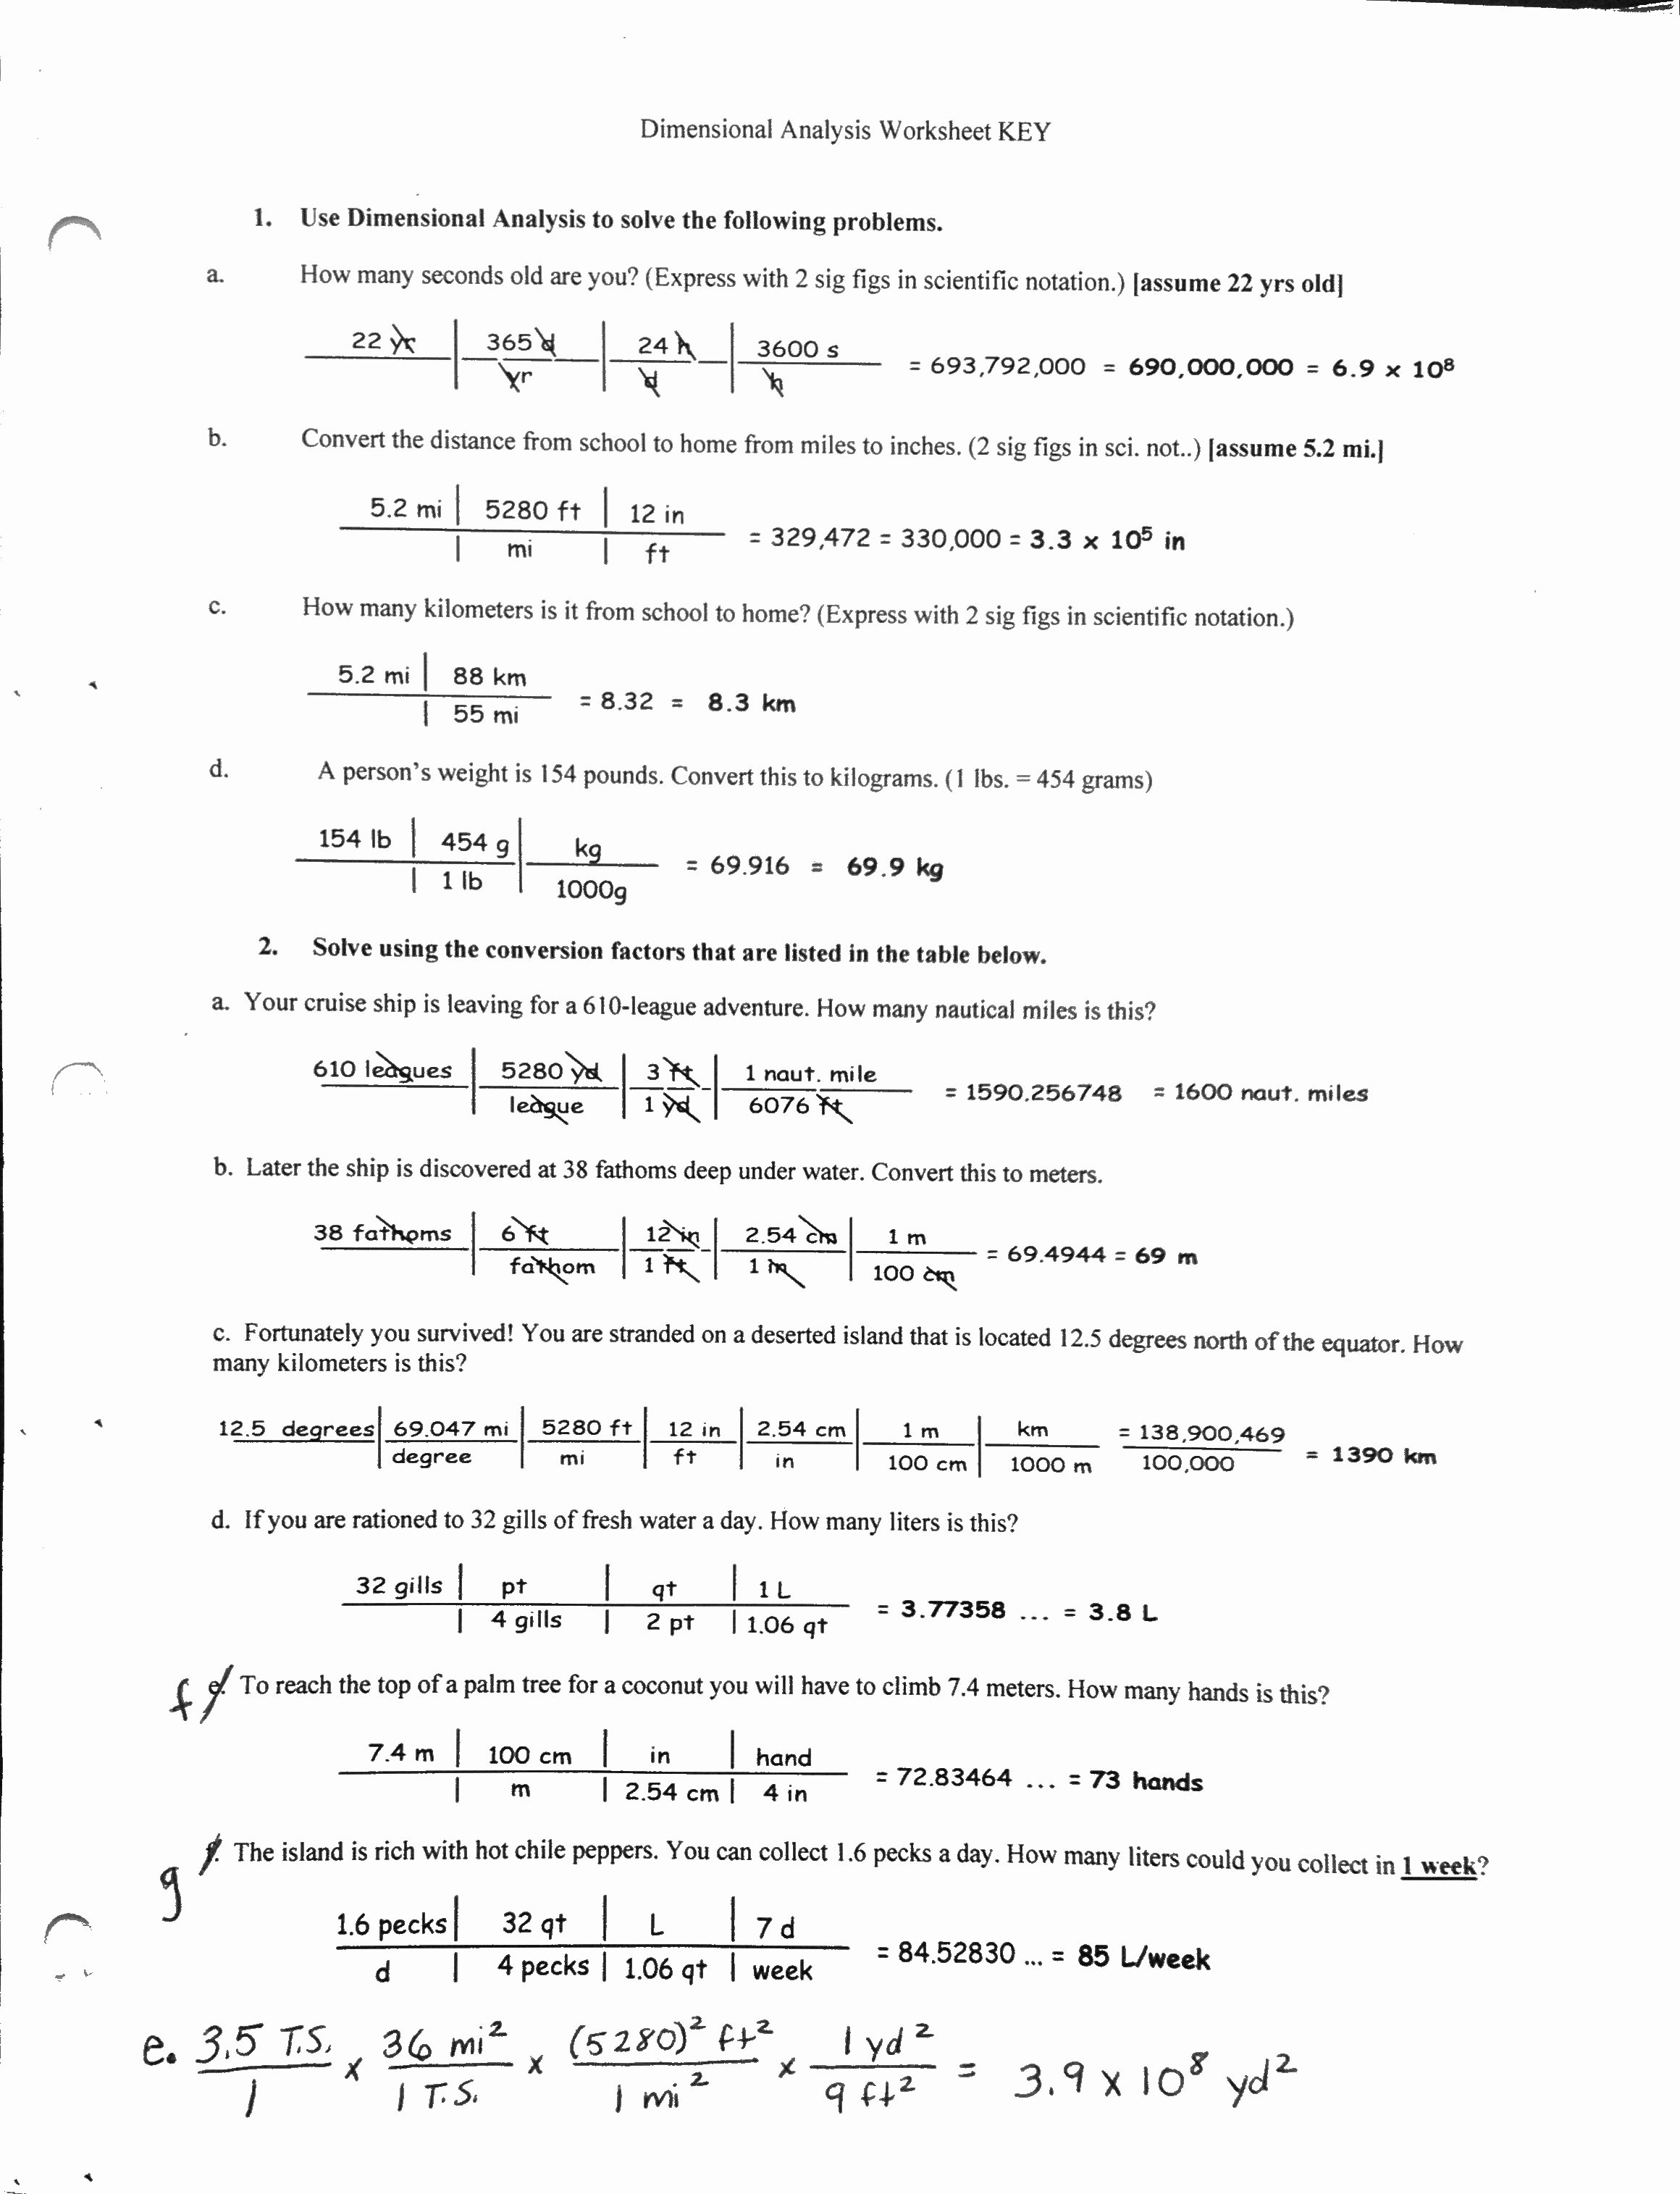 Dimensional Analysis Worksheet Answers Chemistry New Dimensional Analysis Worksheet with Answer Key the Best